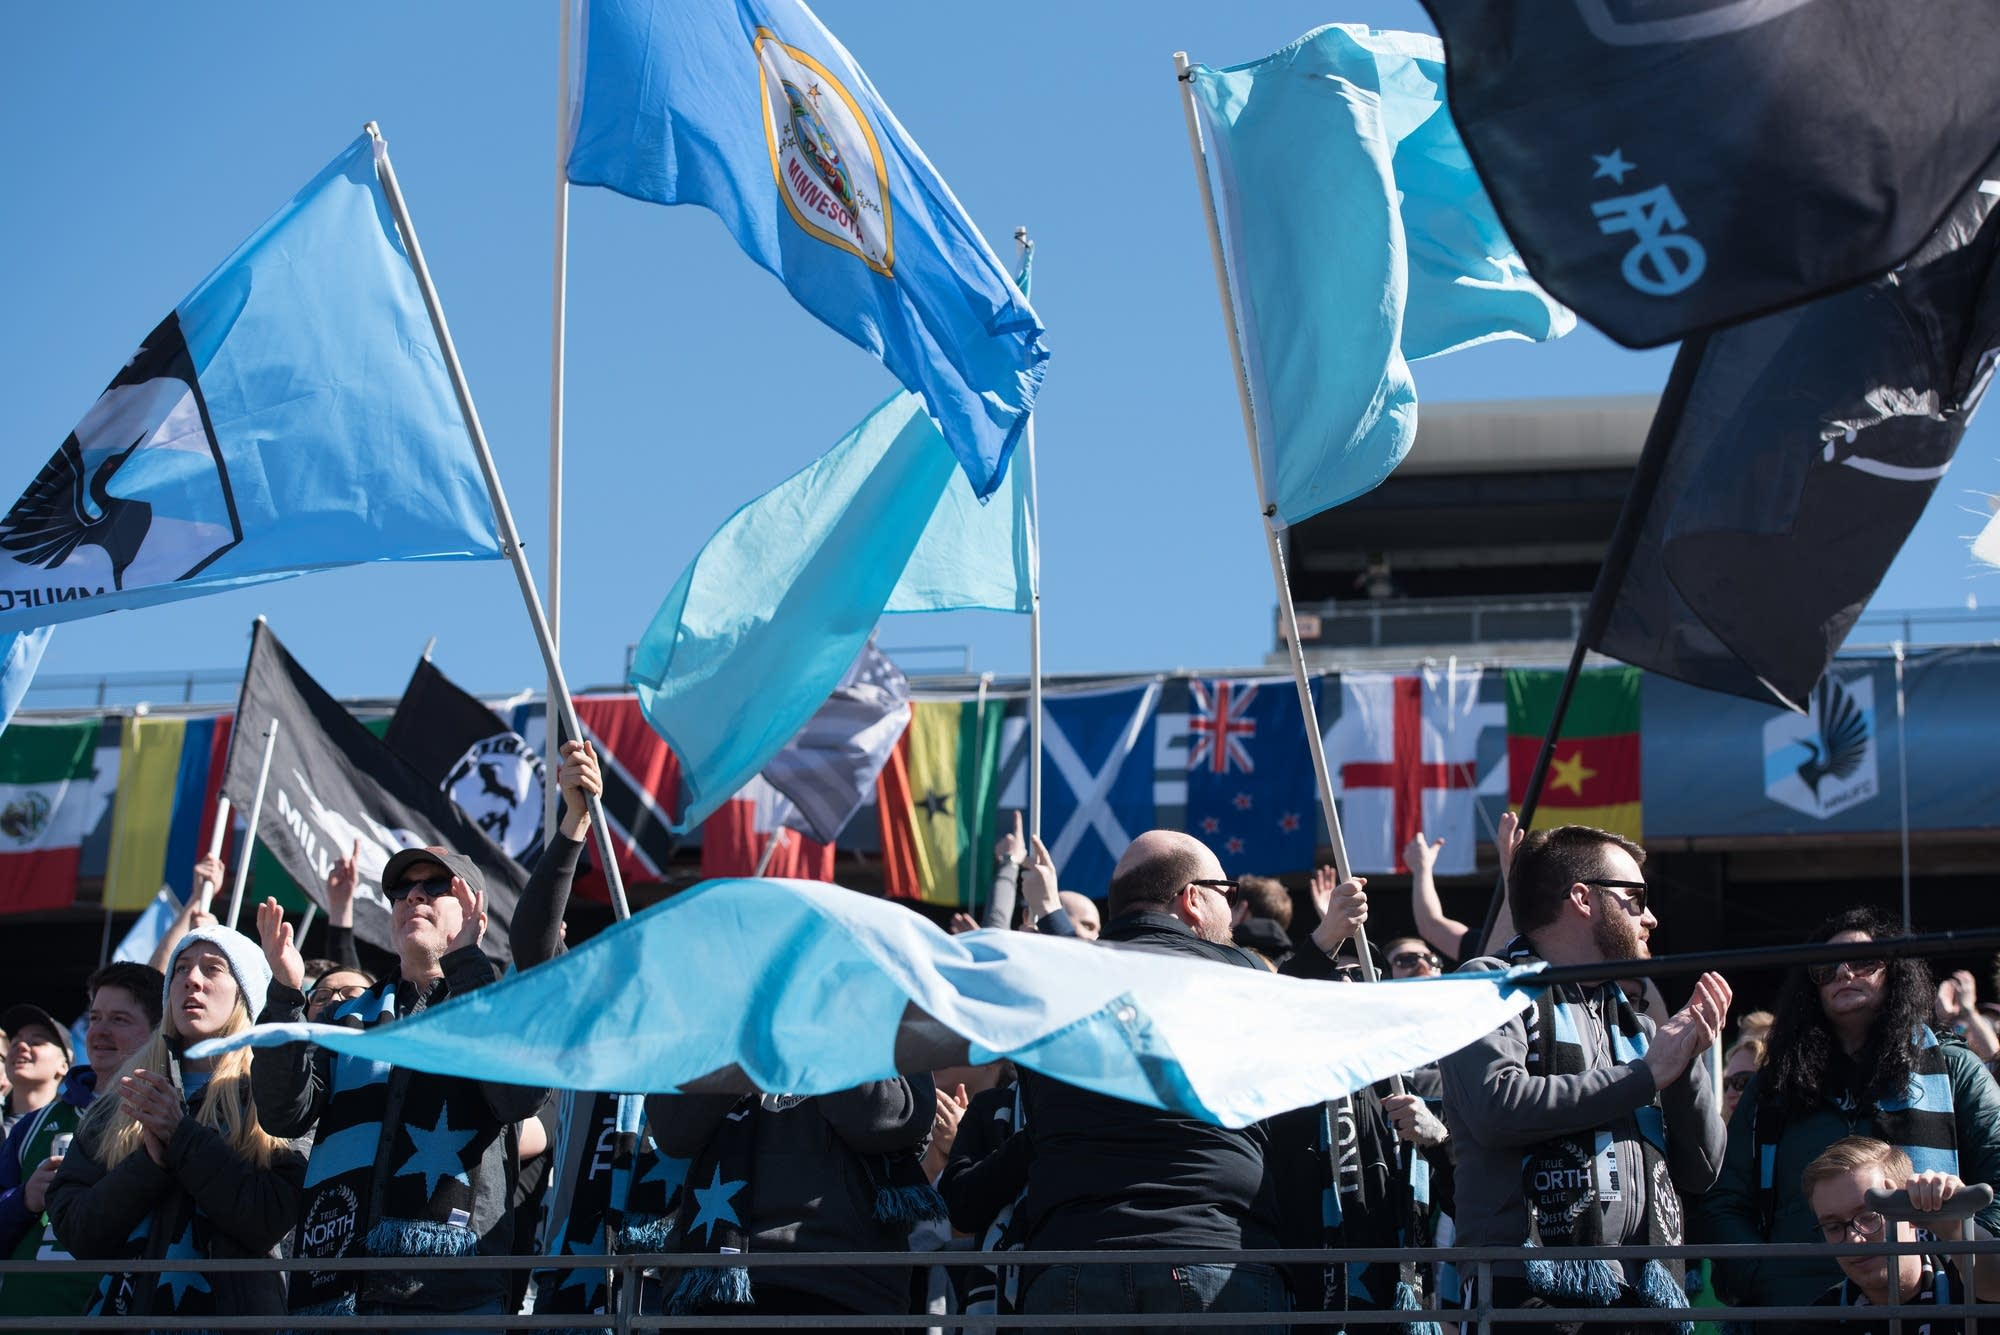 Fans unfurl many flags to support the Loons.